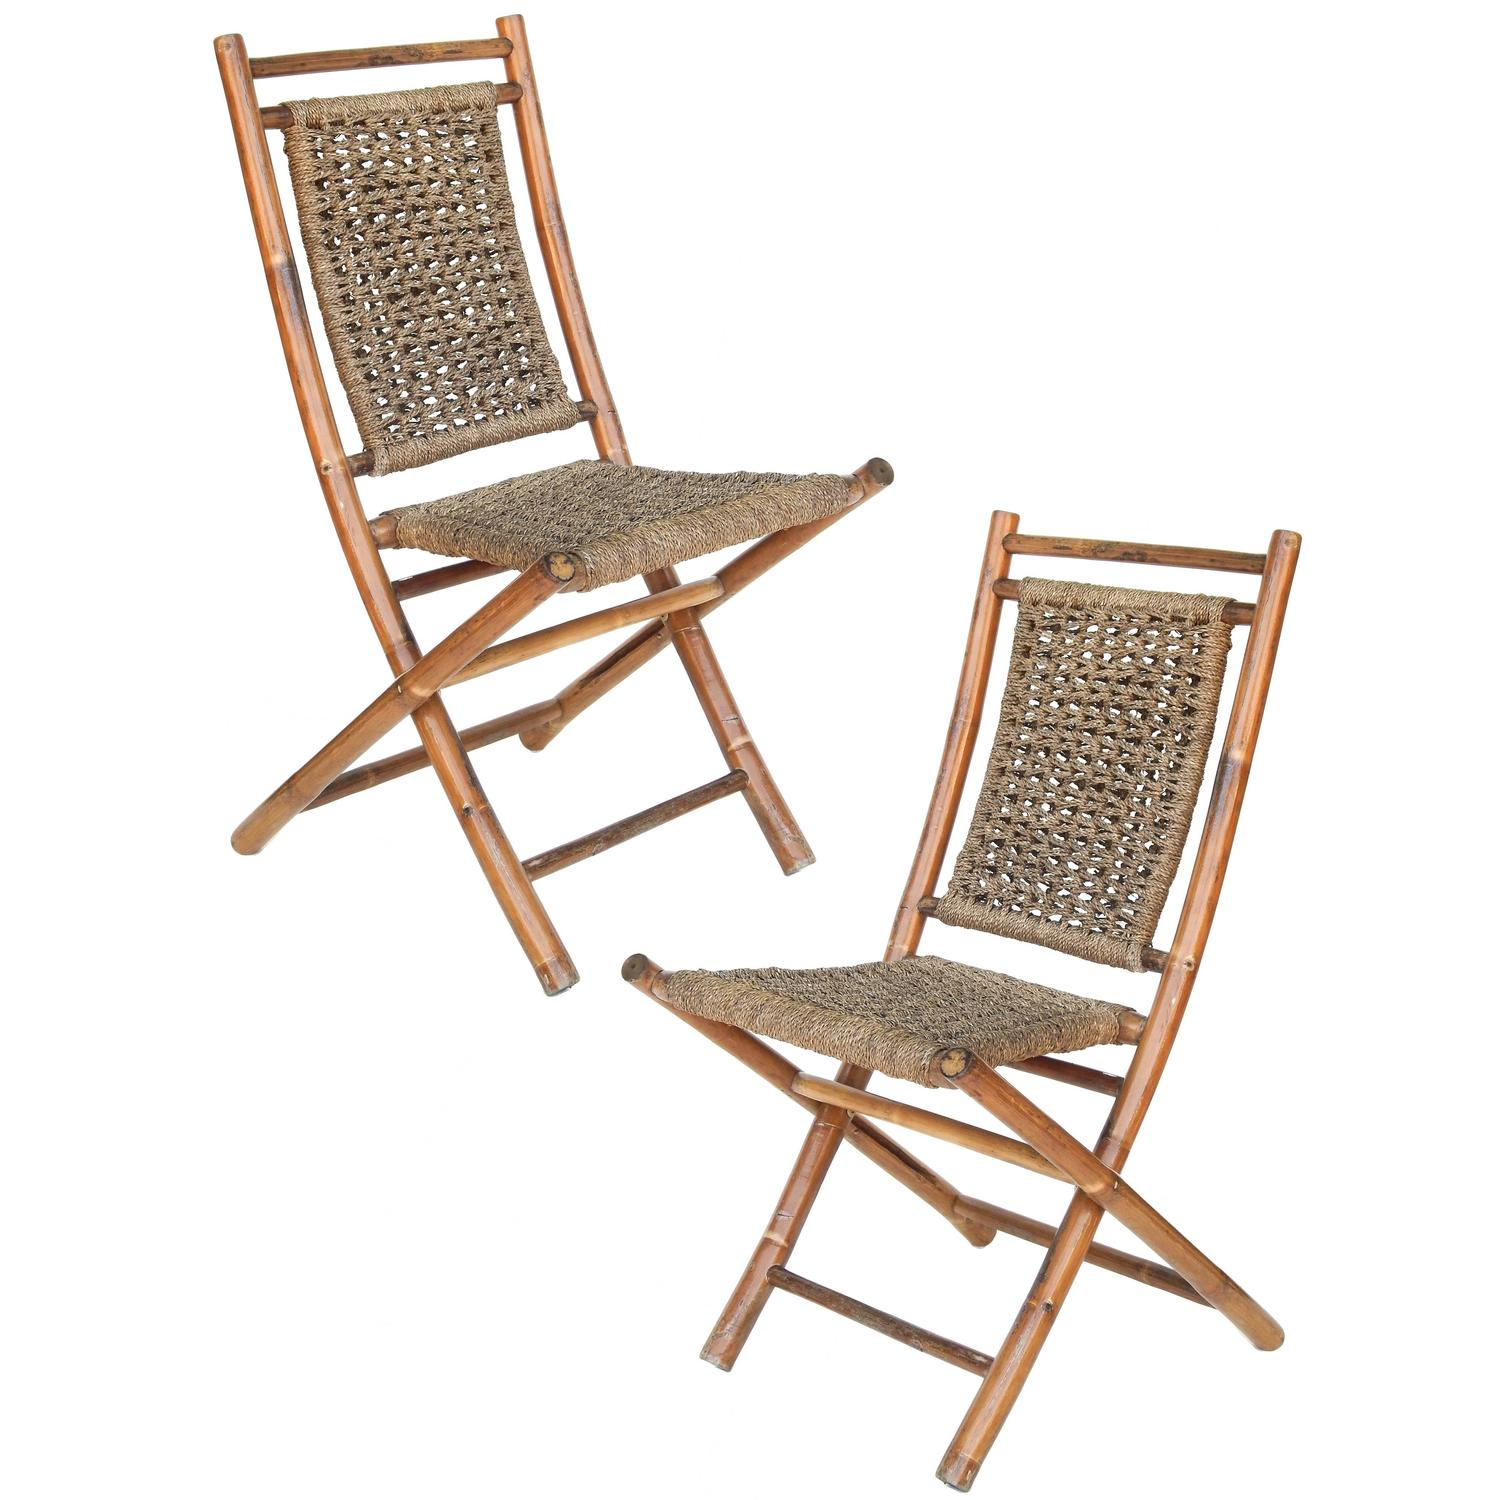 sea grass chairs brown leather executive desk chair folding bamboo and seagrass for sale at 1stdibs